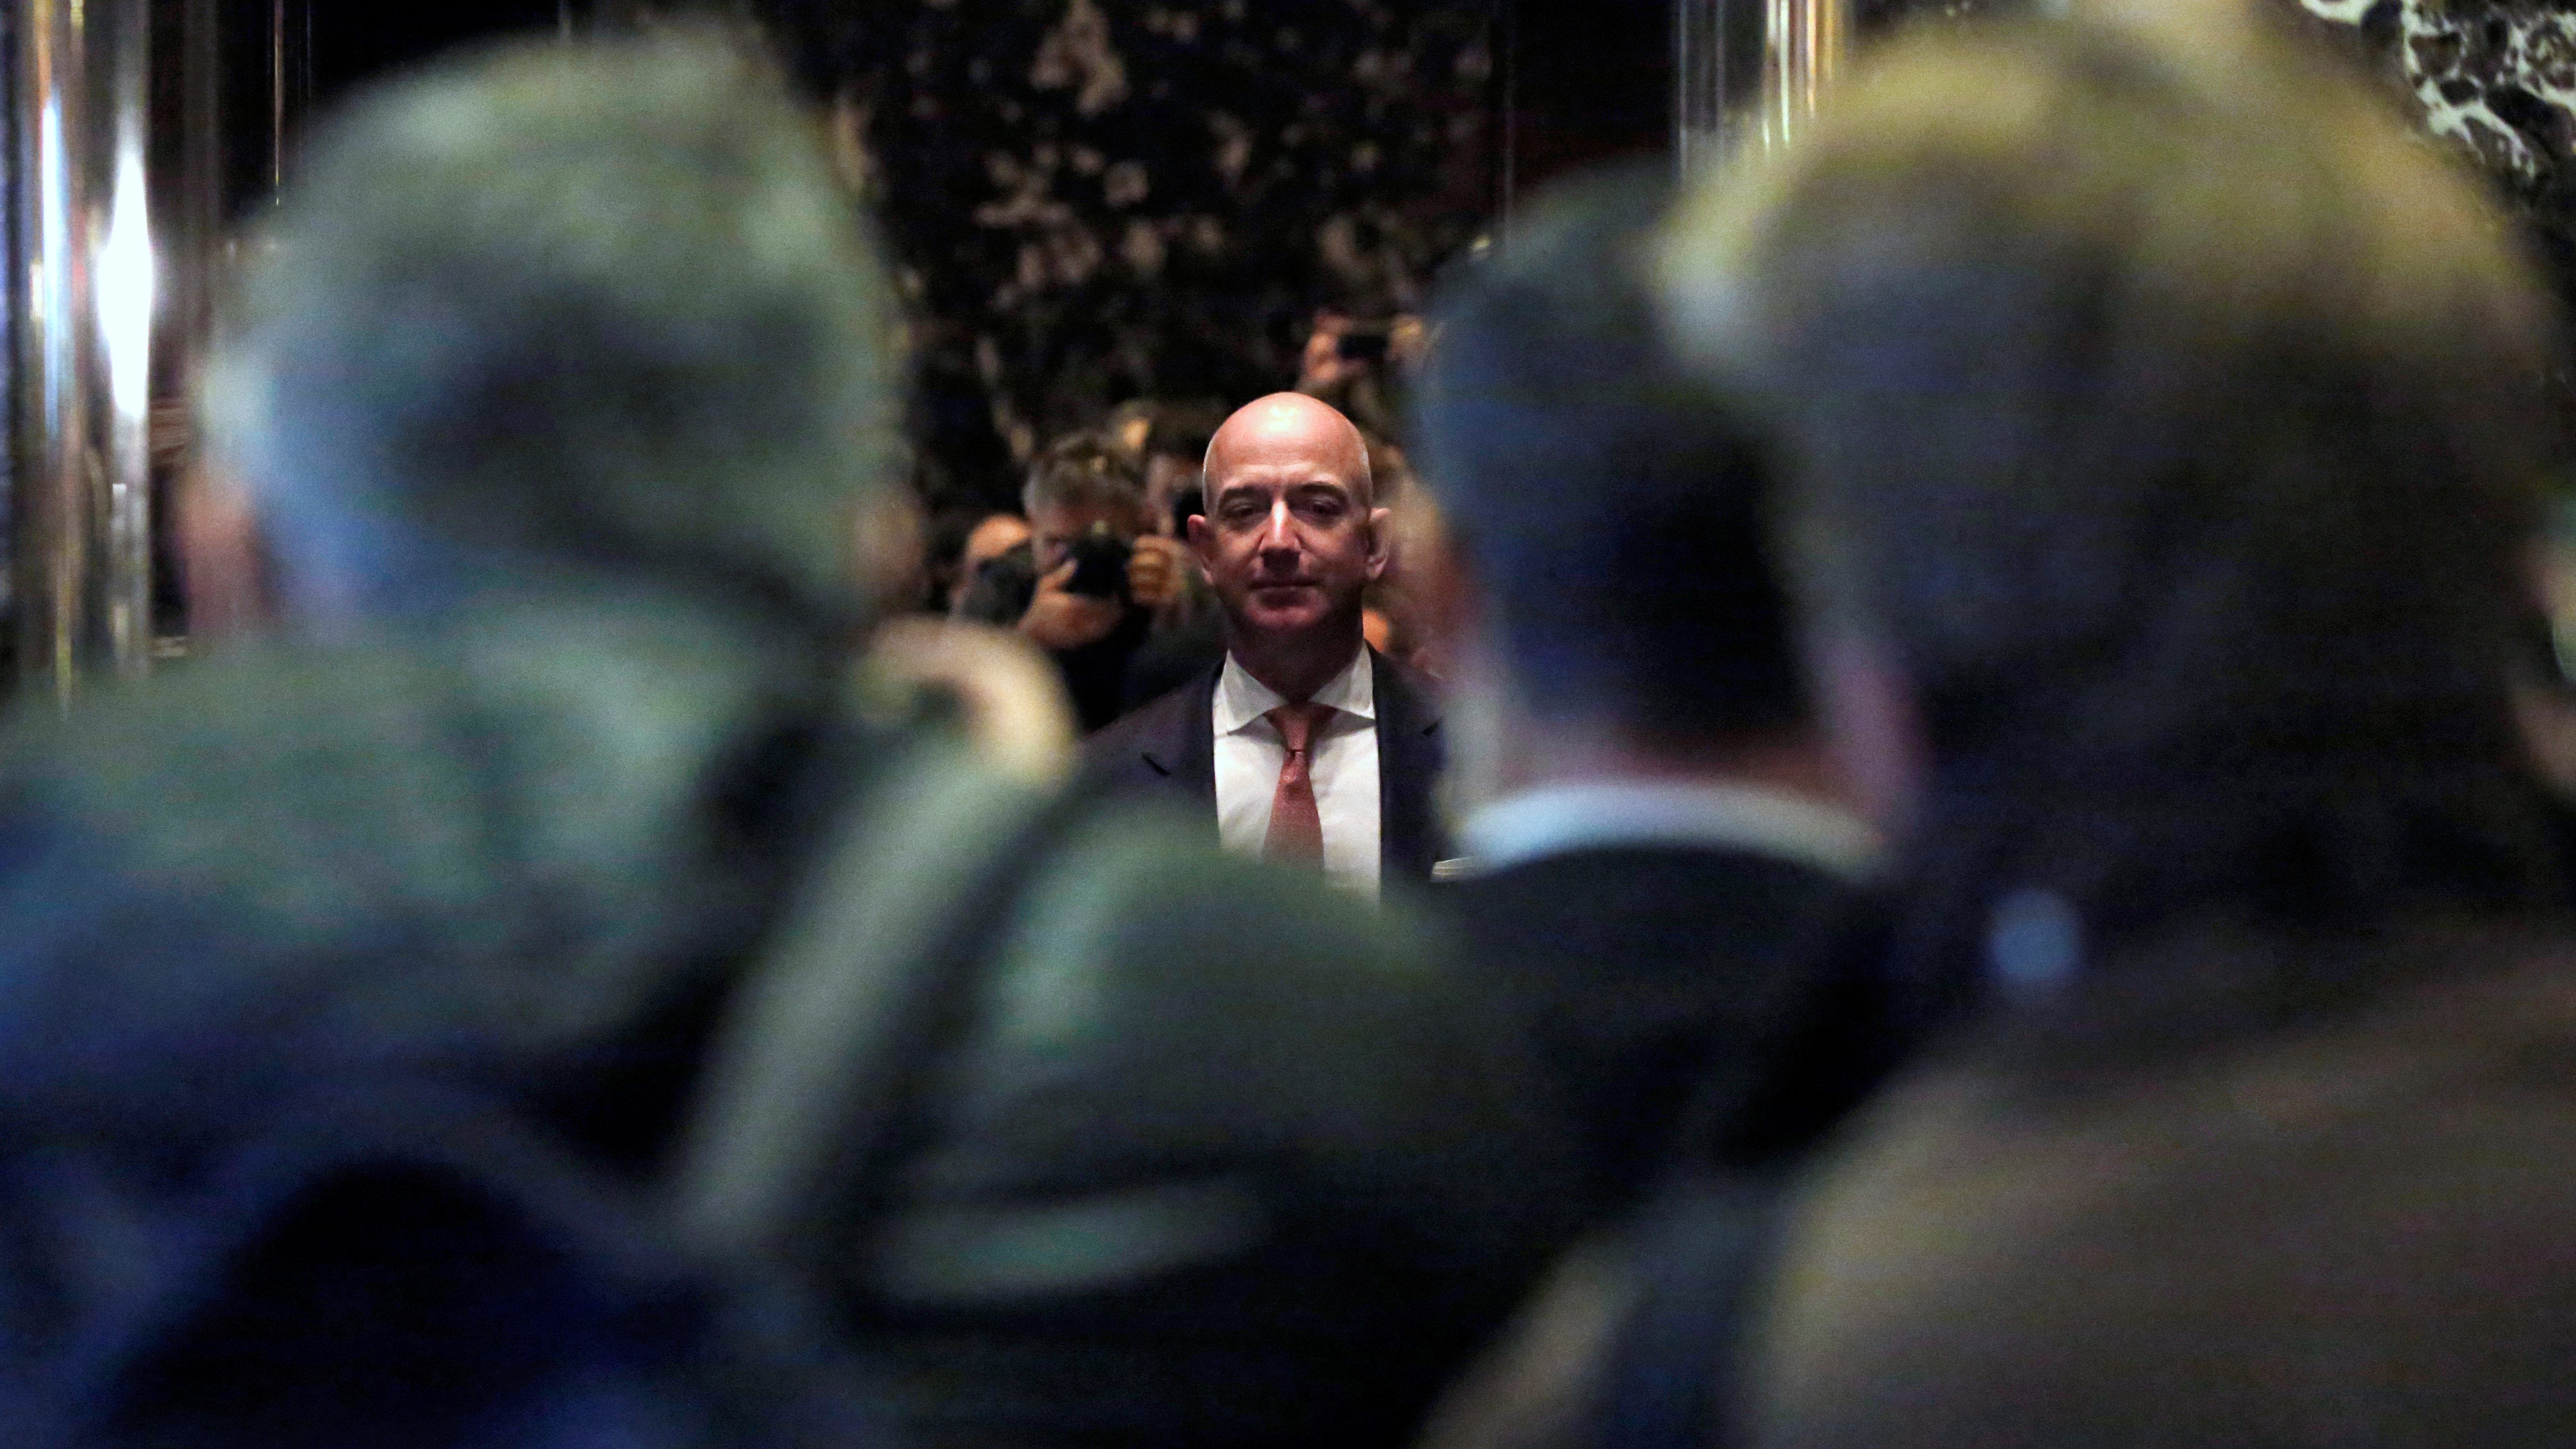 Jeff Bezos, founder, chairman, and arch executive officer of Amazon.com is photographed by media as he enters Trump Tower forward of a assembly of record leaders with President-elect Donald Trump in Manhattan, New York City, U.S.